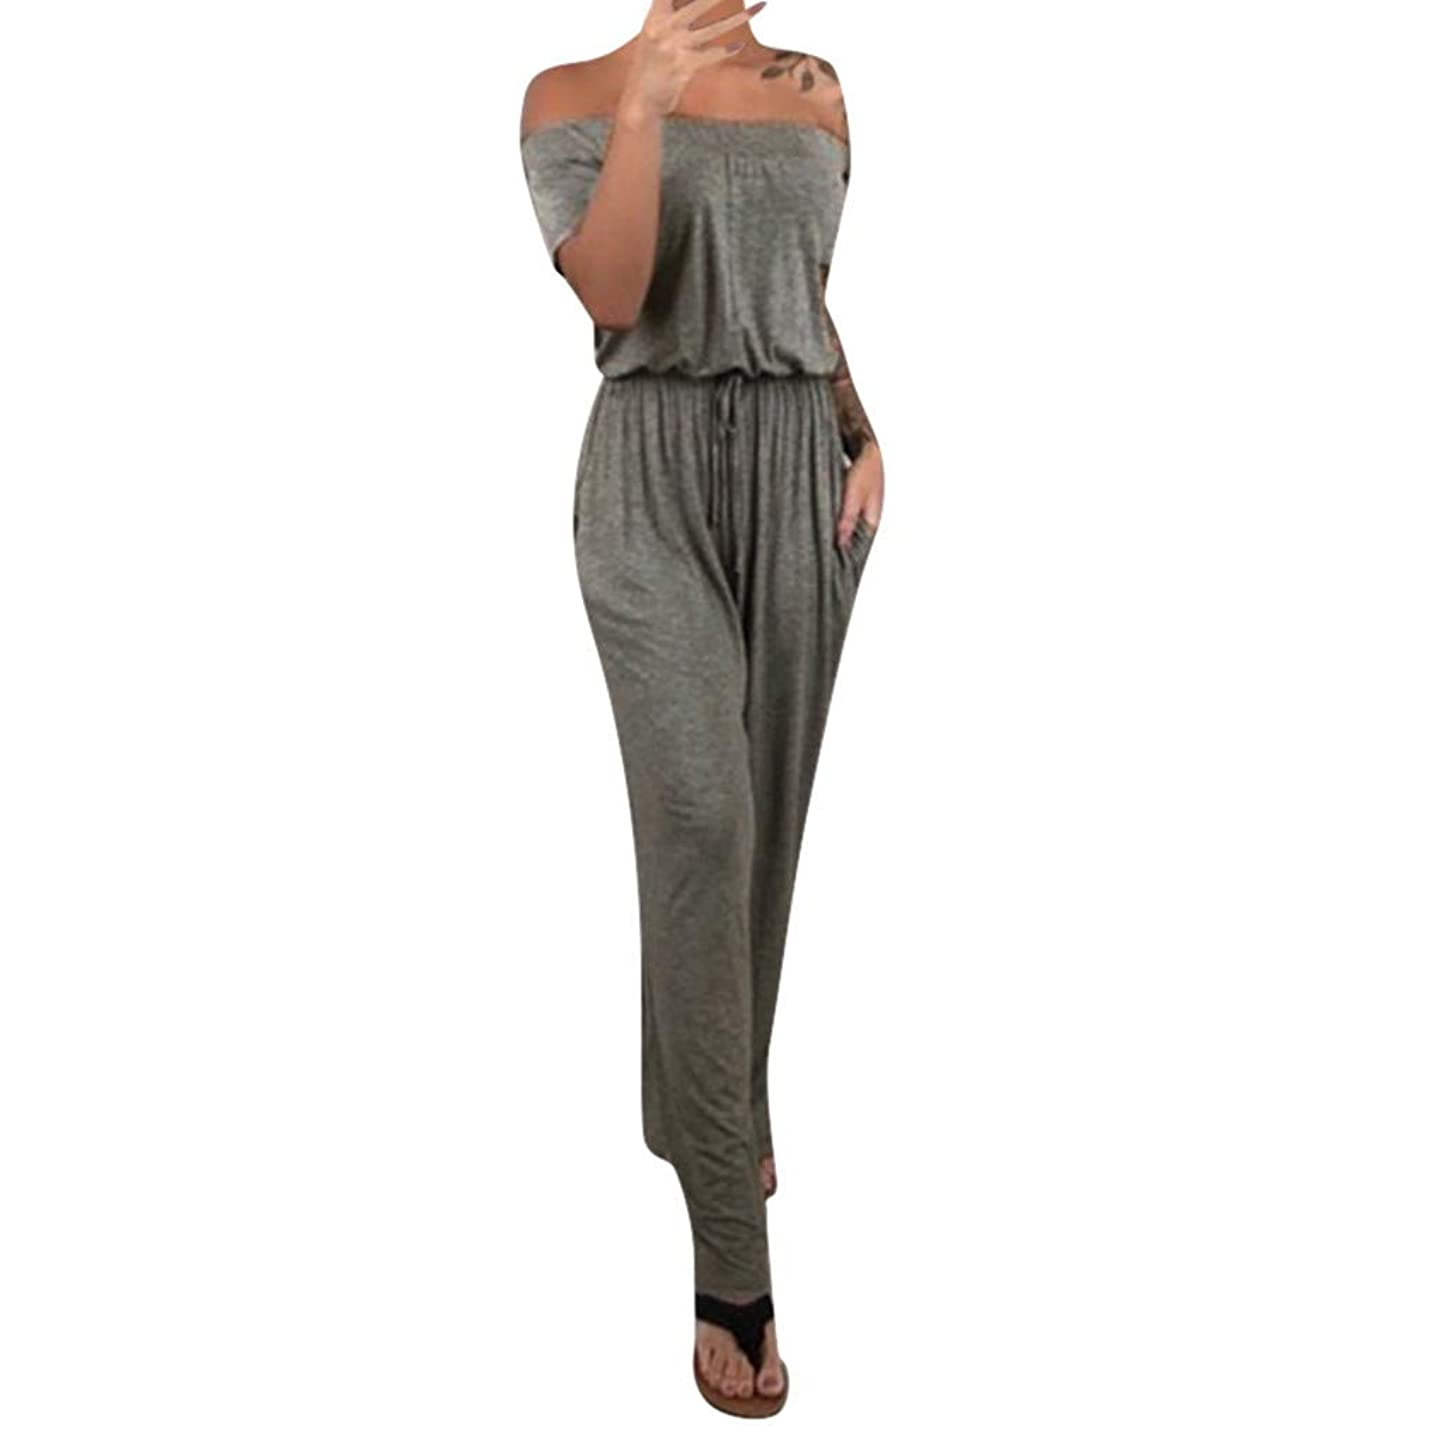 lendly Women's Sexy Romper Off Shoulder Jumpsuit Casual Strapless Wide Leg Pants Playsuits Summer Casual Overolls